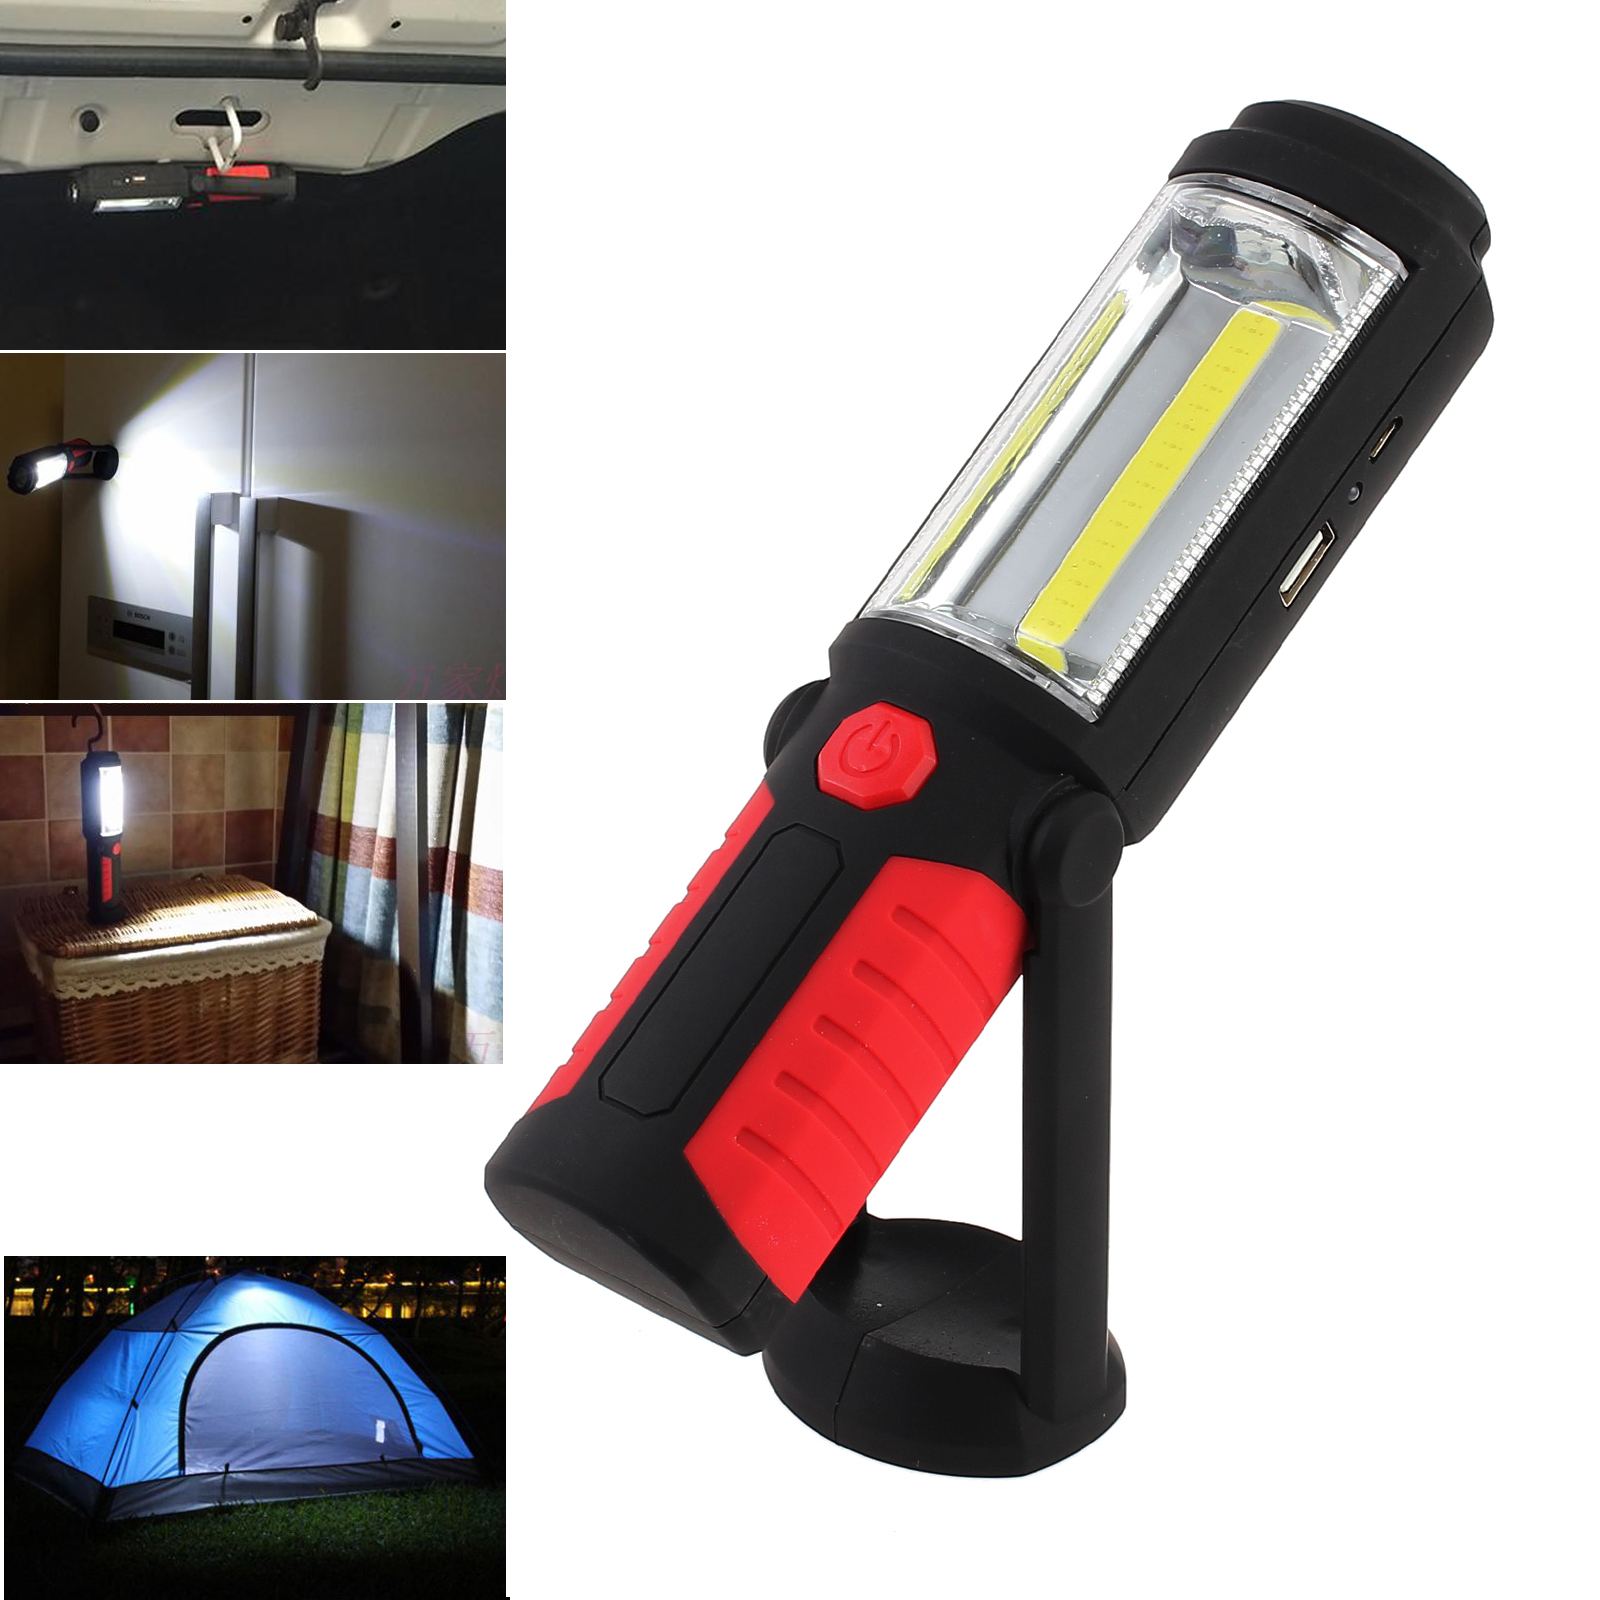 ESYNIC LED Work Light Torch COB Inspection Lamp USB Rechargeable Handheld Work Light Lamp Hand Torch Super Bright Magnetic LED Flashlight Torch Light Lamp for Camping Outdoor Emergency